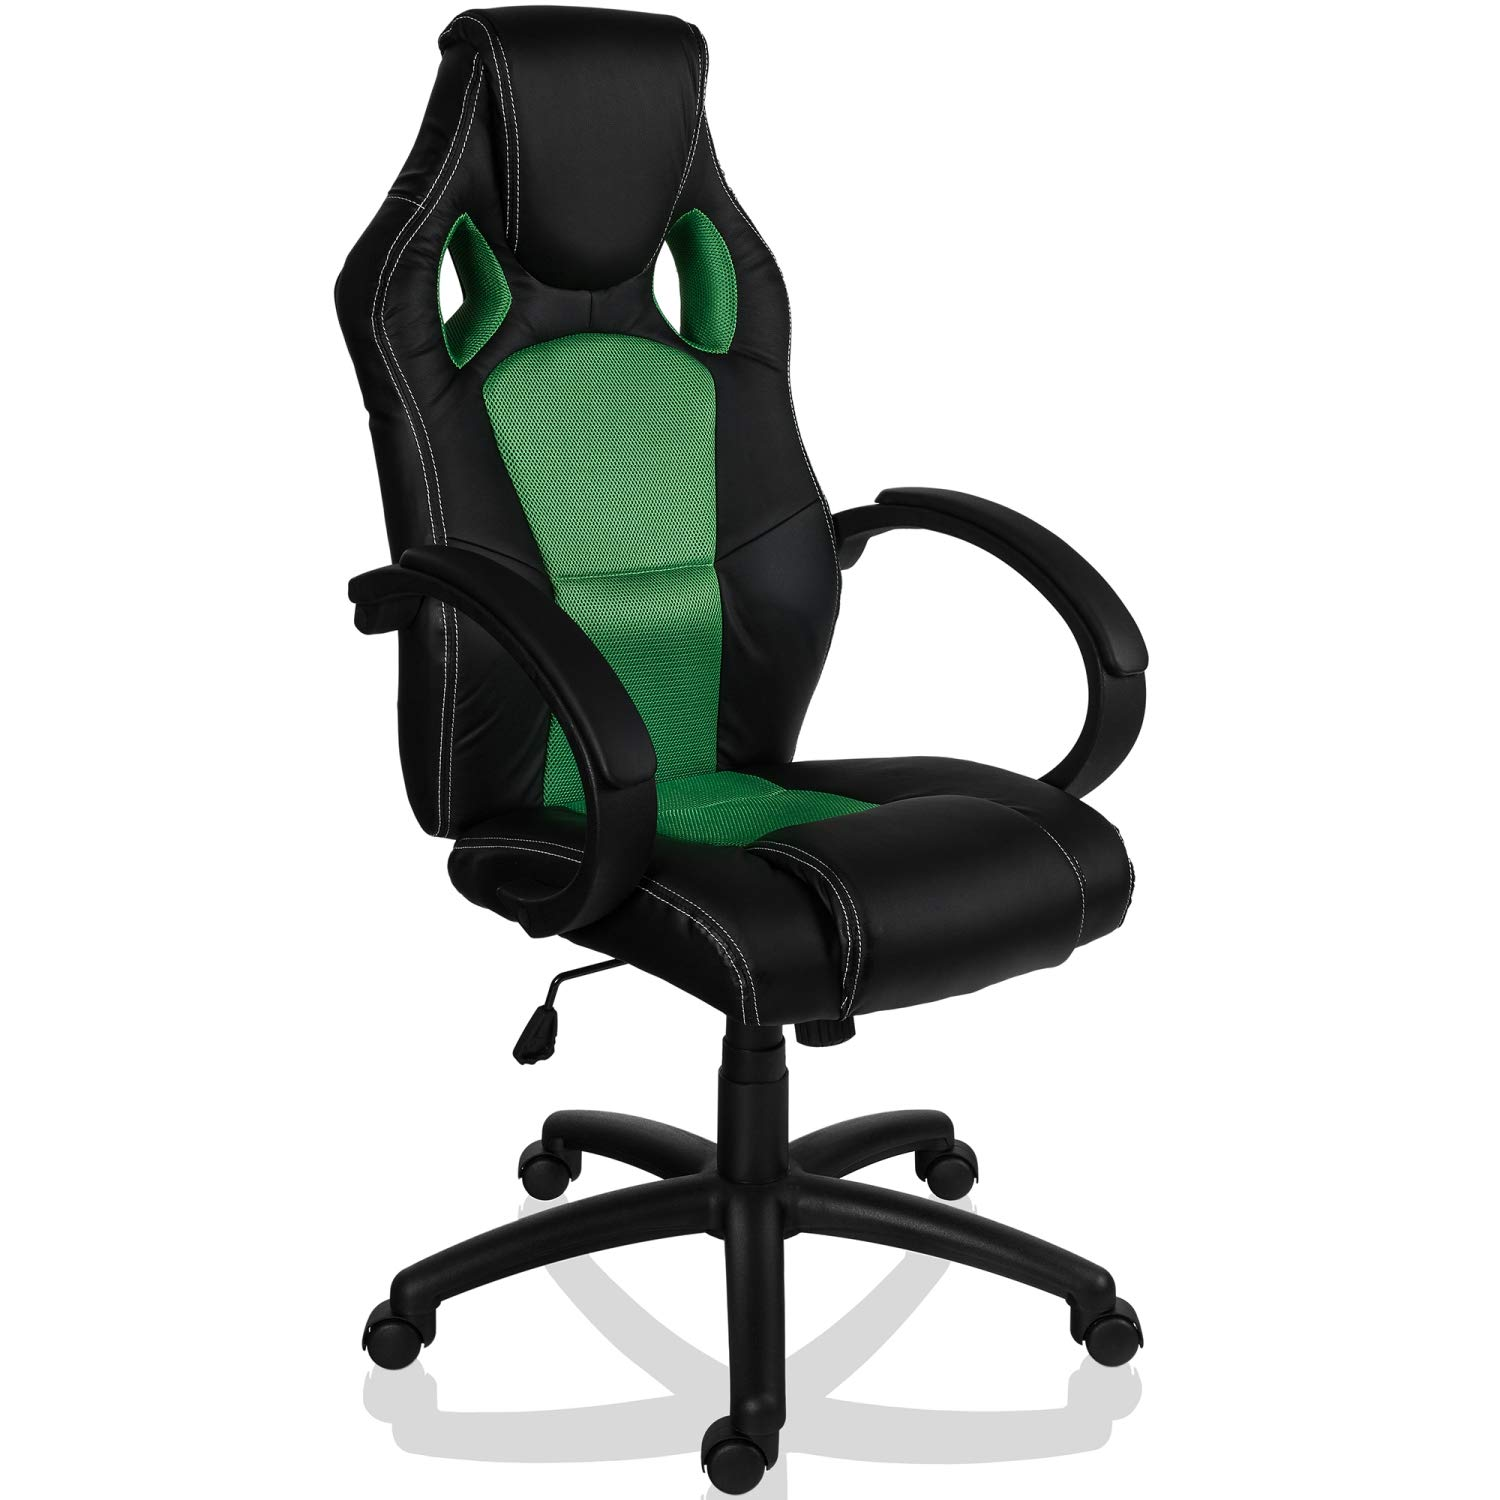 Maxstore RACEMASTER® Racing Bürostuhl GS Series Gaming Chair Gamer Stuhl in 20 Varianten Drehstuhl Gaslift SGS Geprüft Schreibtischstuhl Wippmechanik Grün